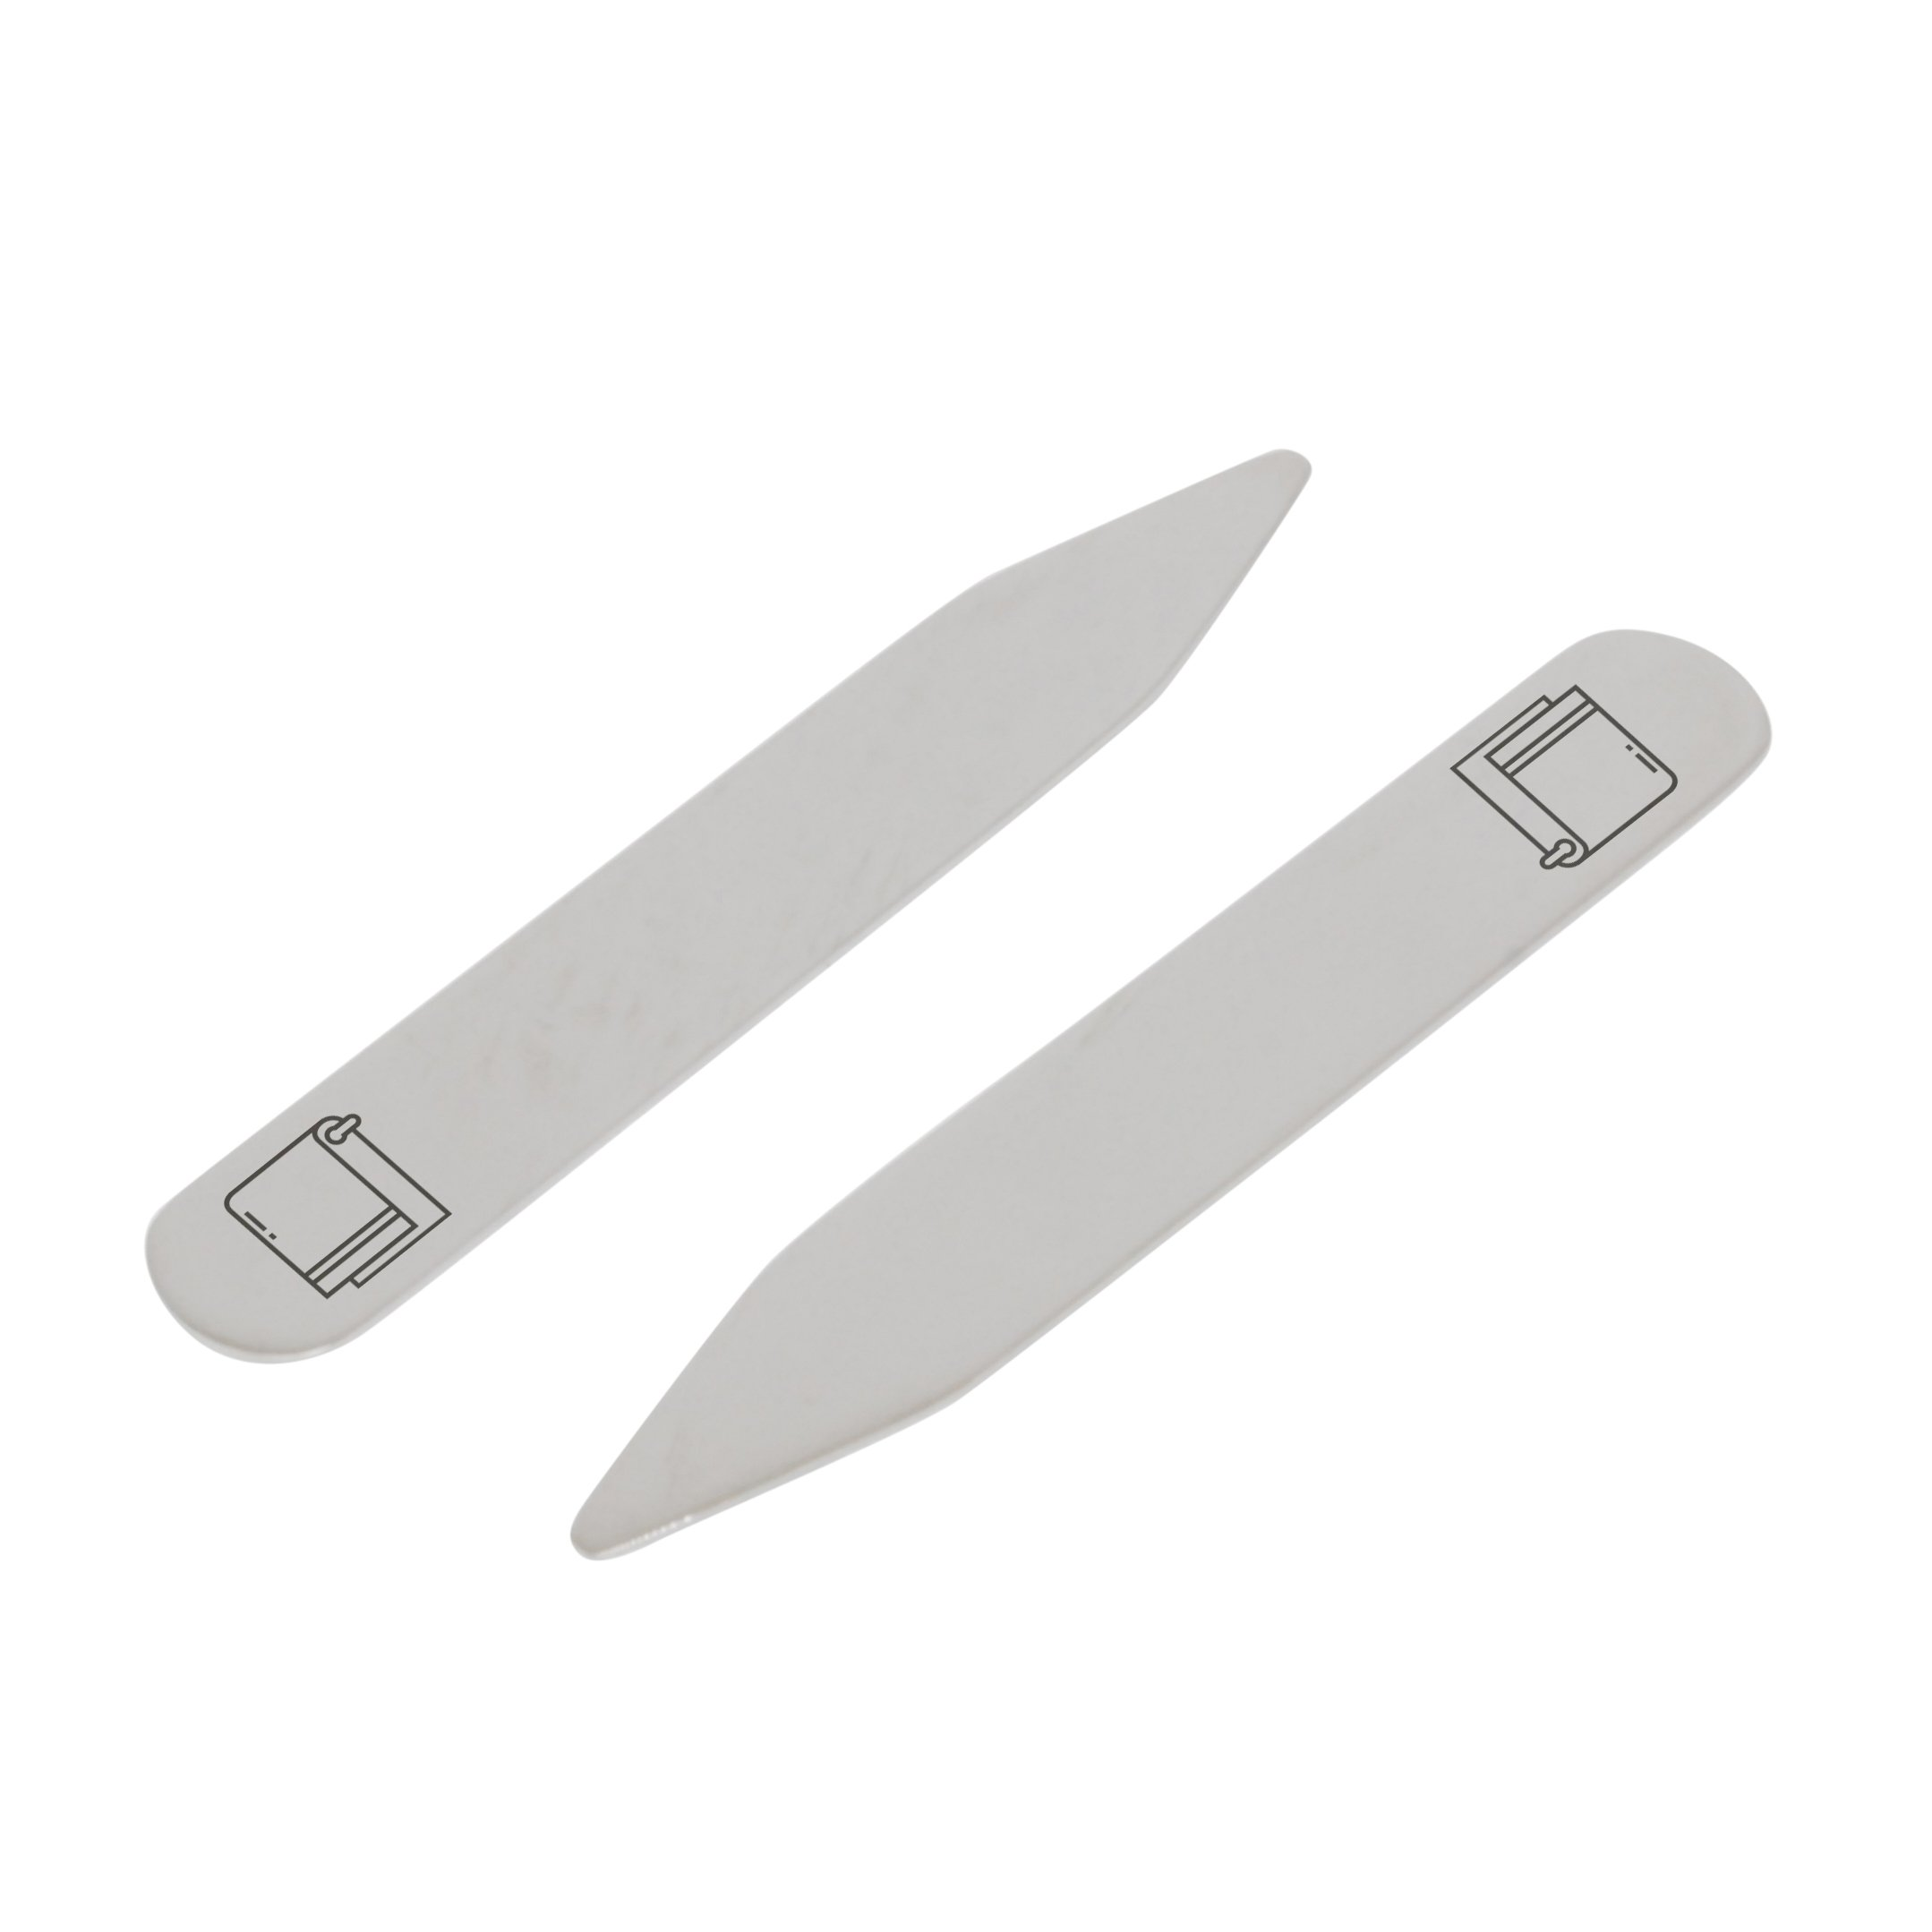 MODERN GOODS SHOP Stainless Steel Collar Stays With Laser Engraved Towel Design - 2.5 Inch Metal Collar Stiffeners - Made In USA